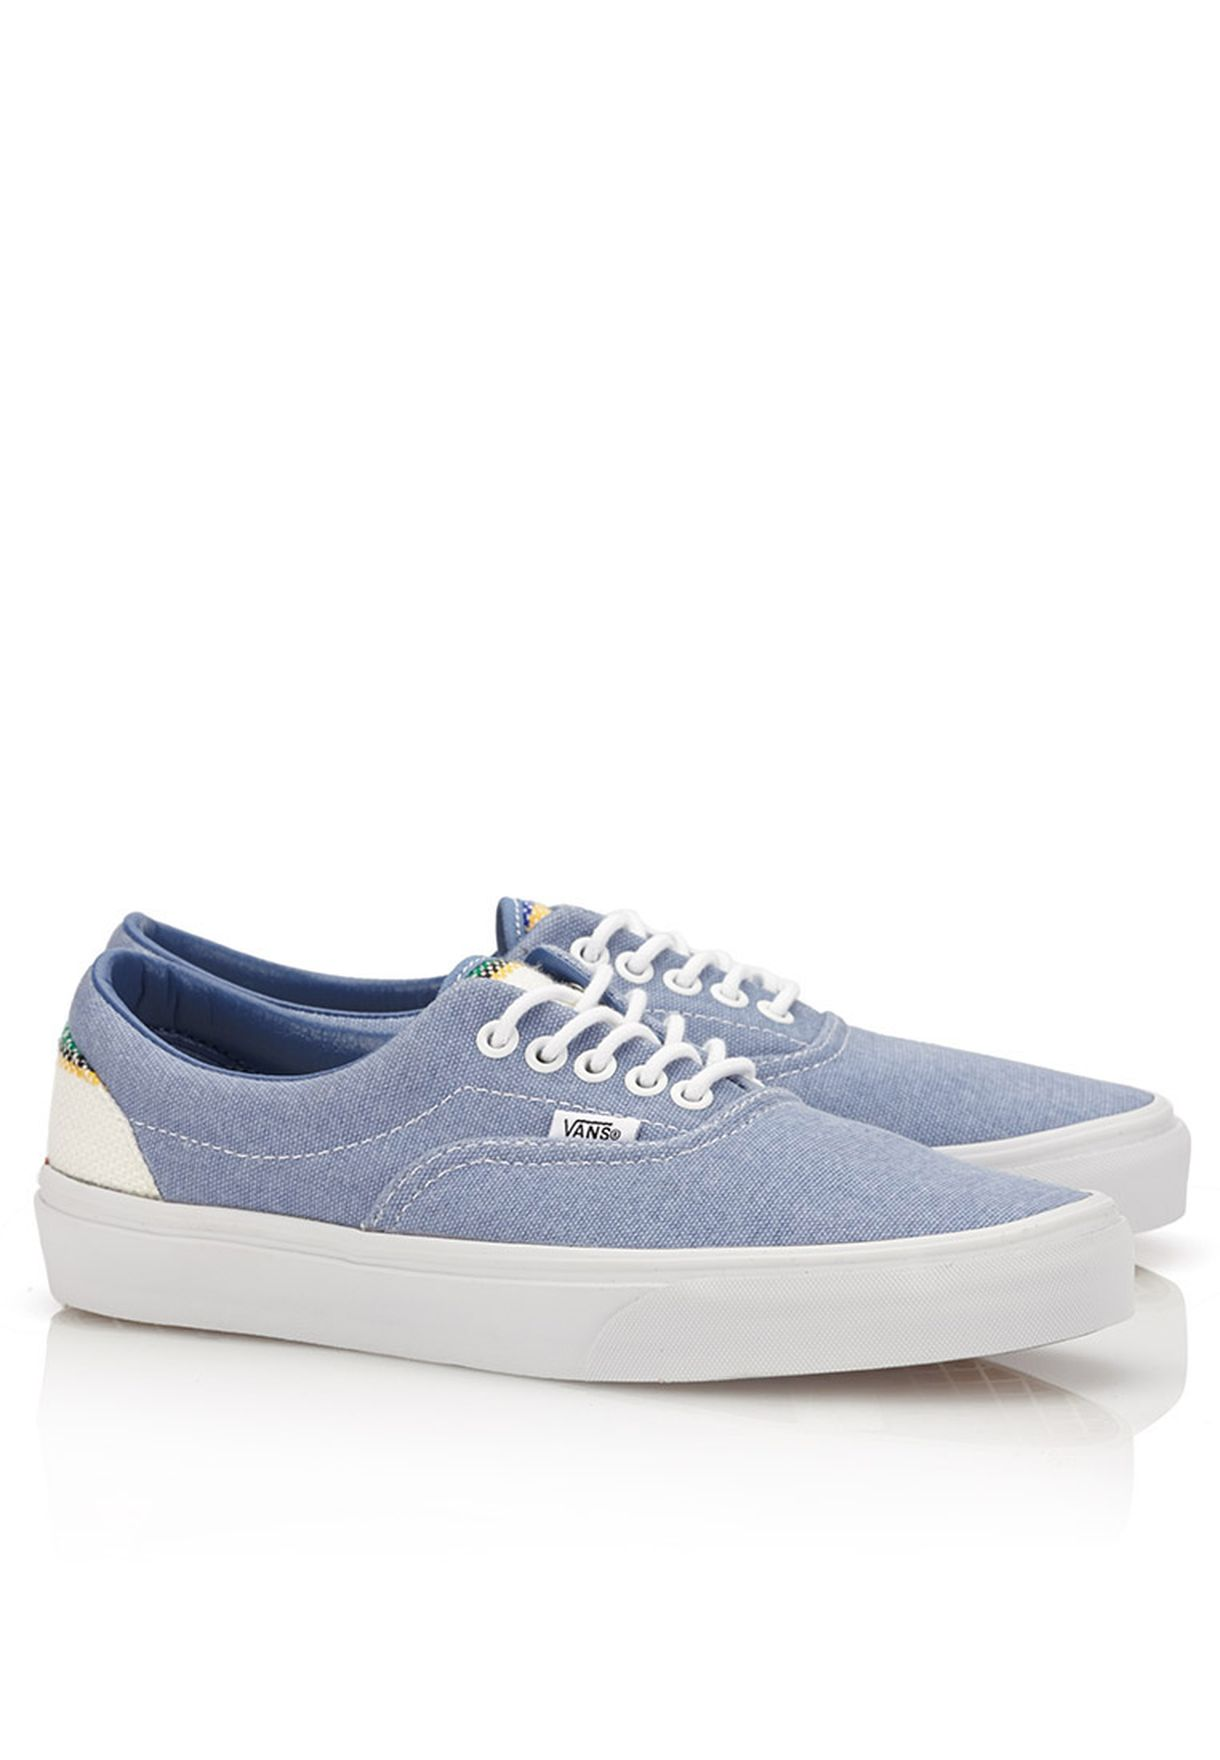 87e1706db1 Shop Vans blue Era Baja Sneakers for Women in Saudi - VA088SH65QEK